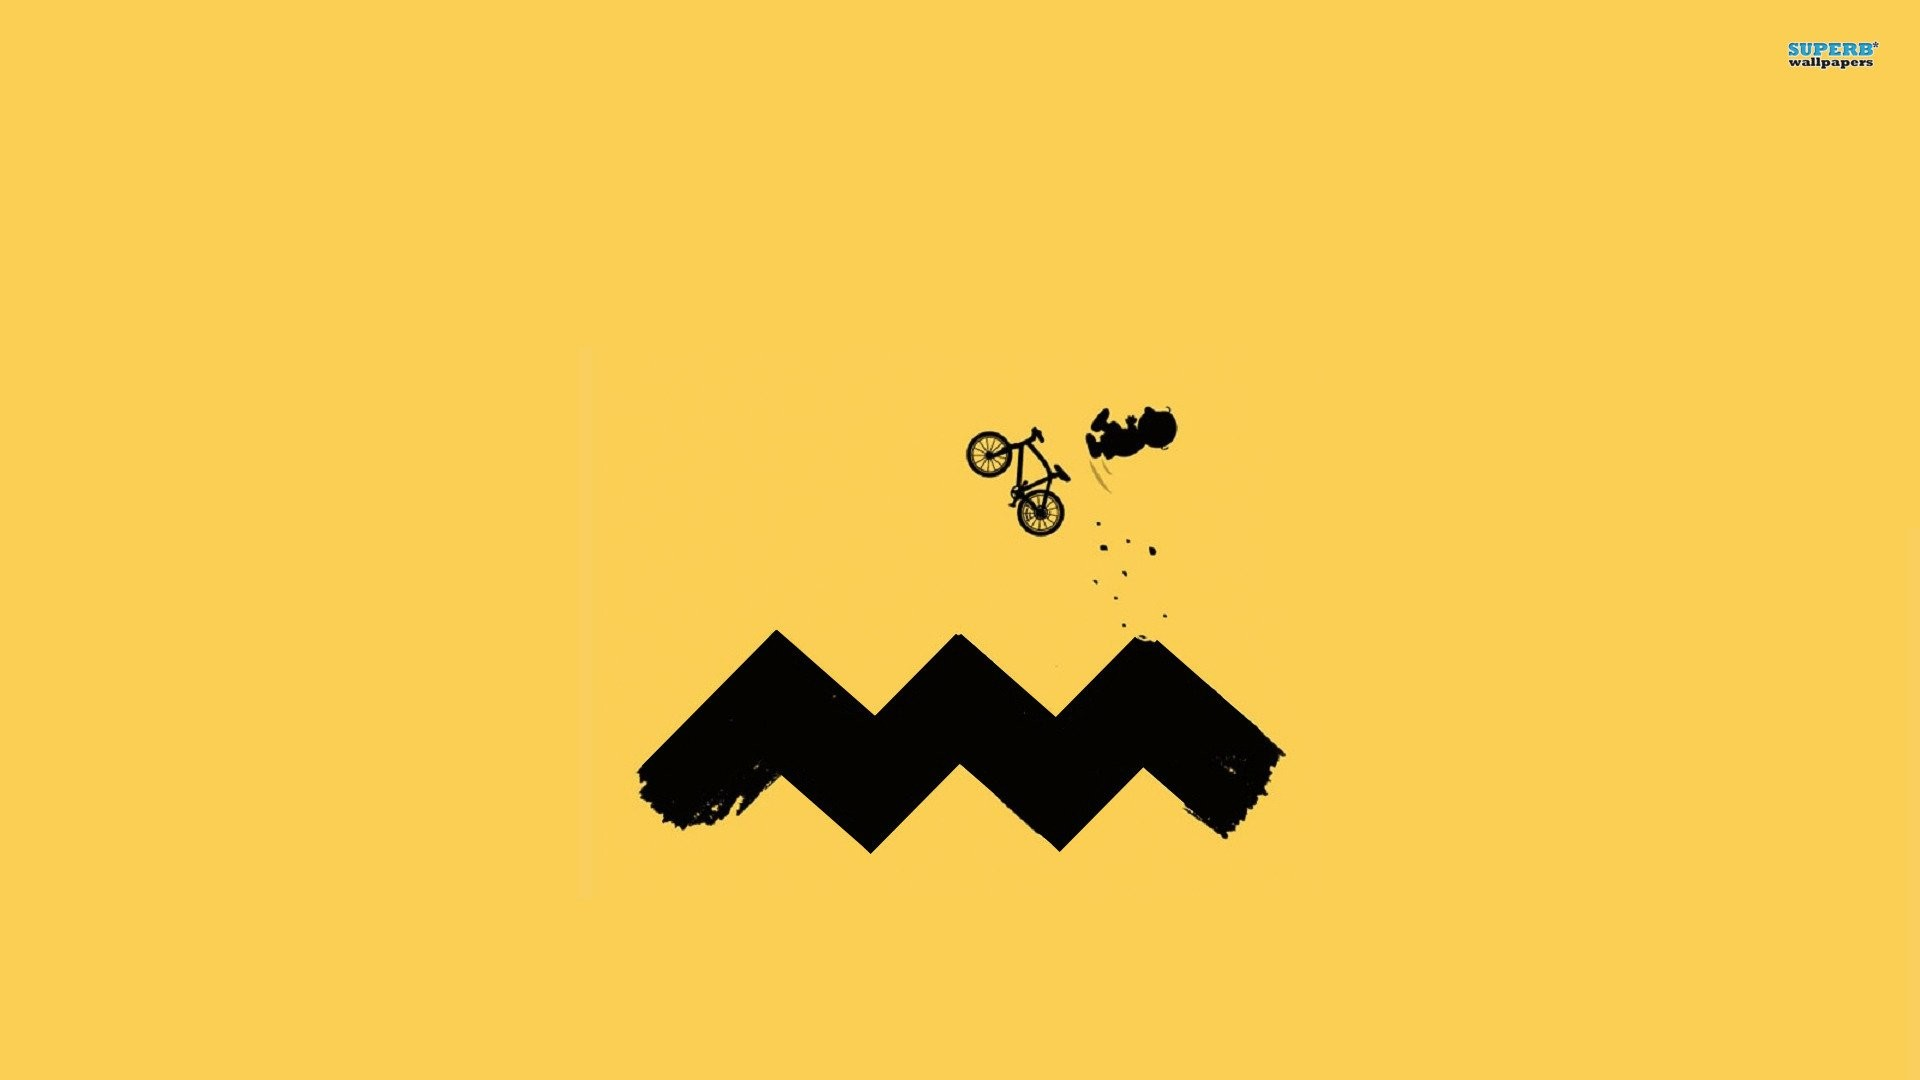 1920x1080 Charlie Brown Cycling